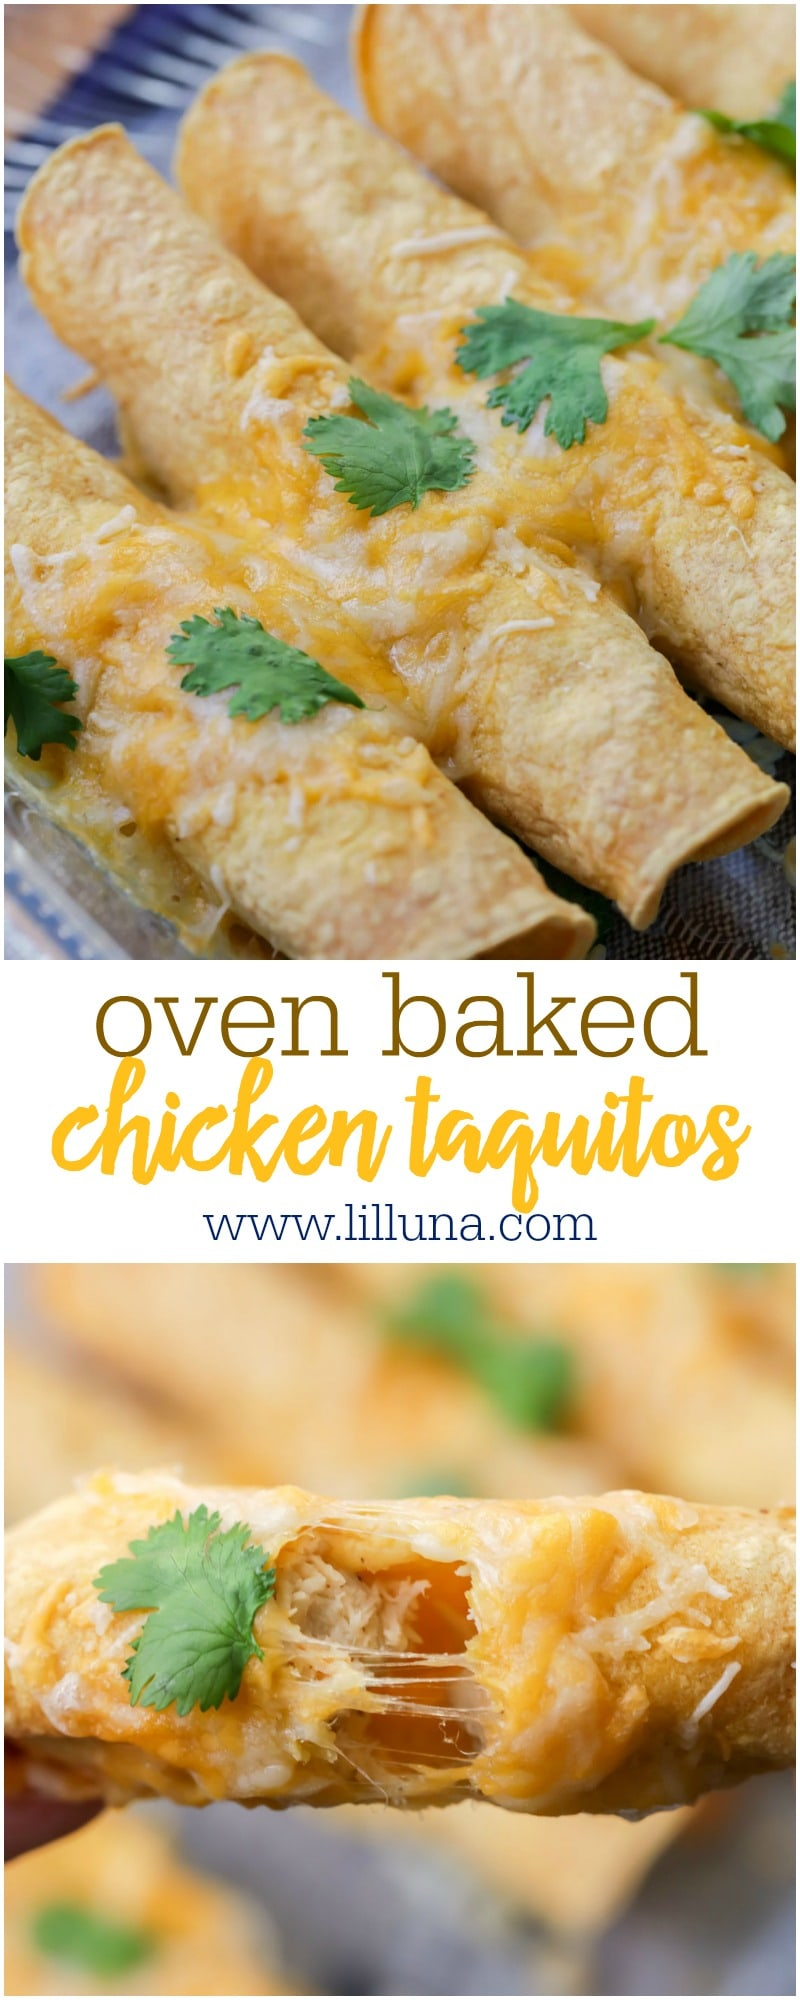 Simple and tasty baked Chicken Taquitos. These rolled tortillas are filled with chicken, cheese, salsa and so many delicious spices!